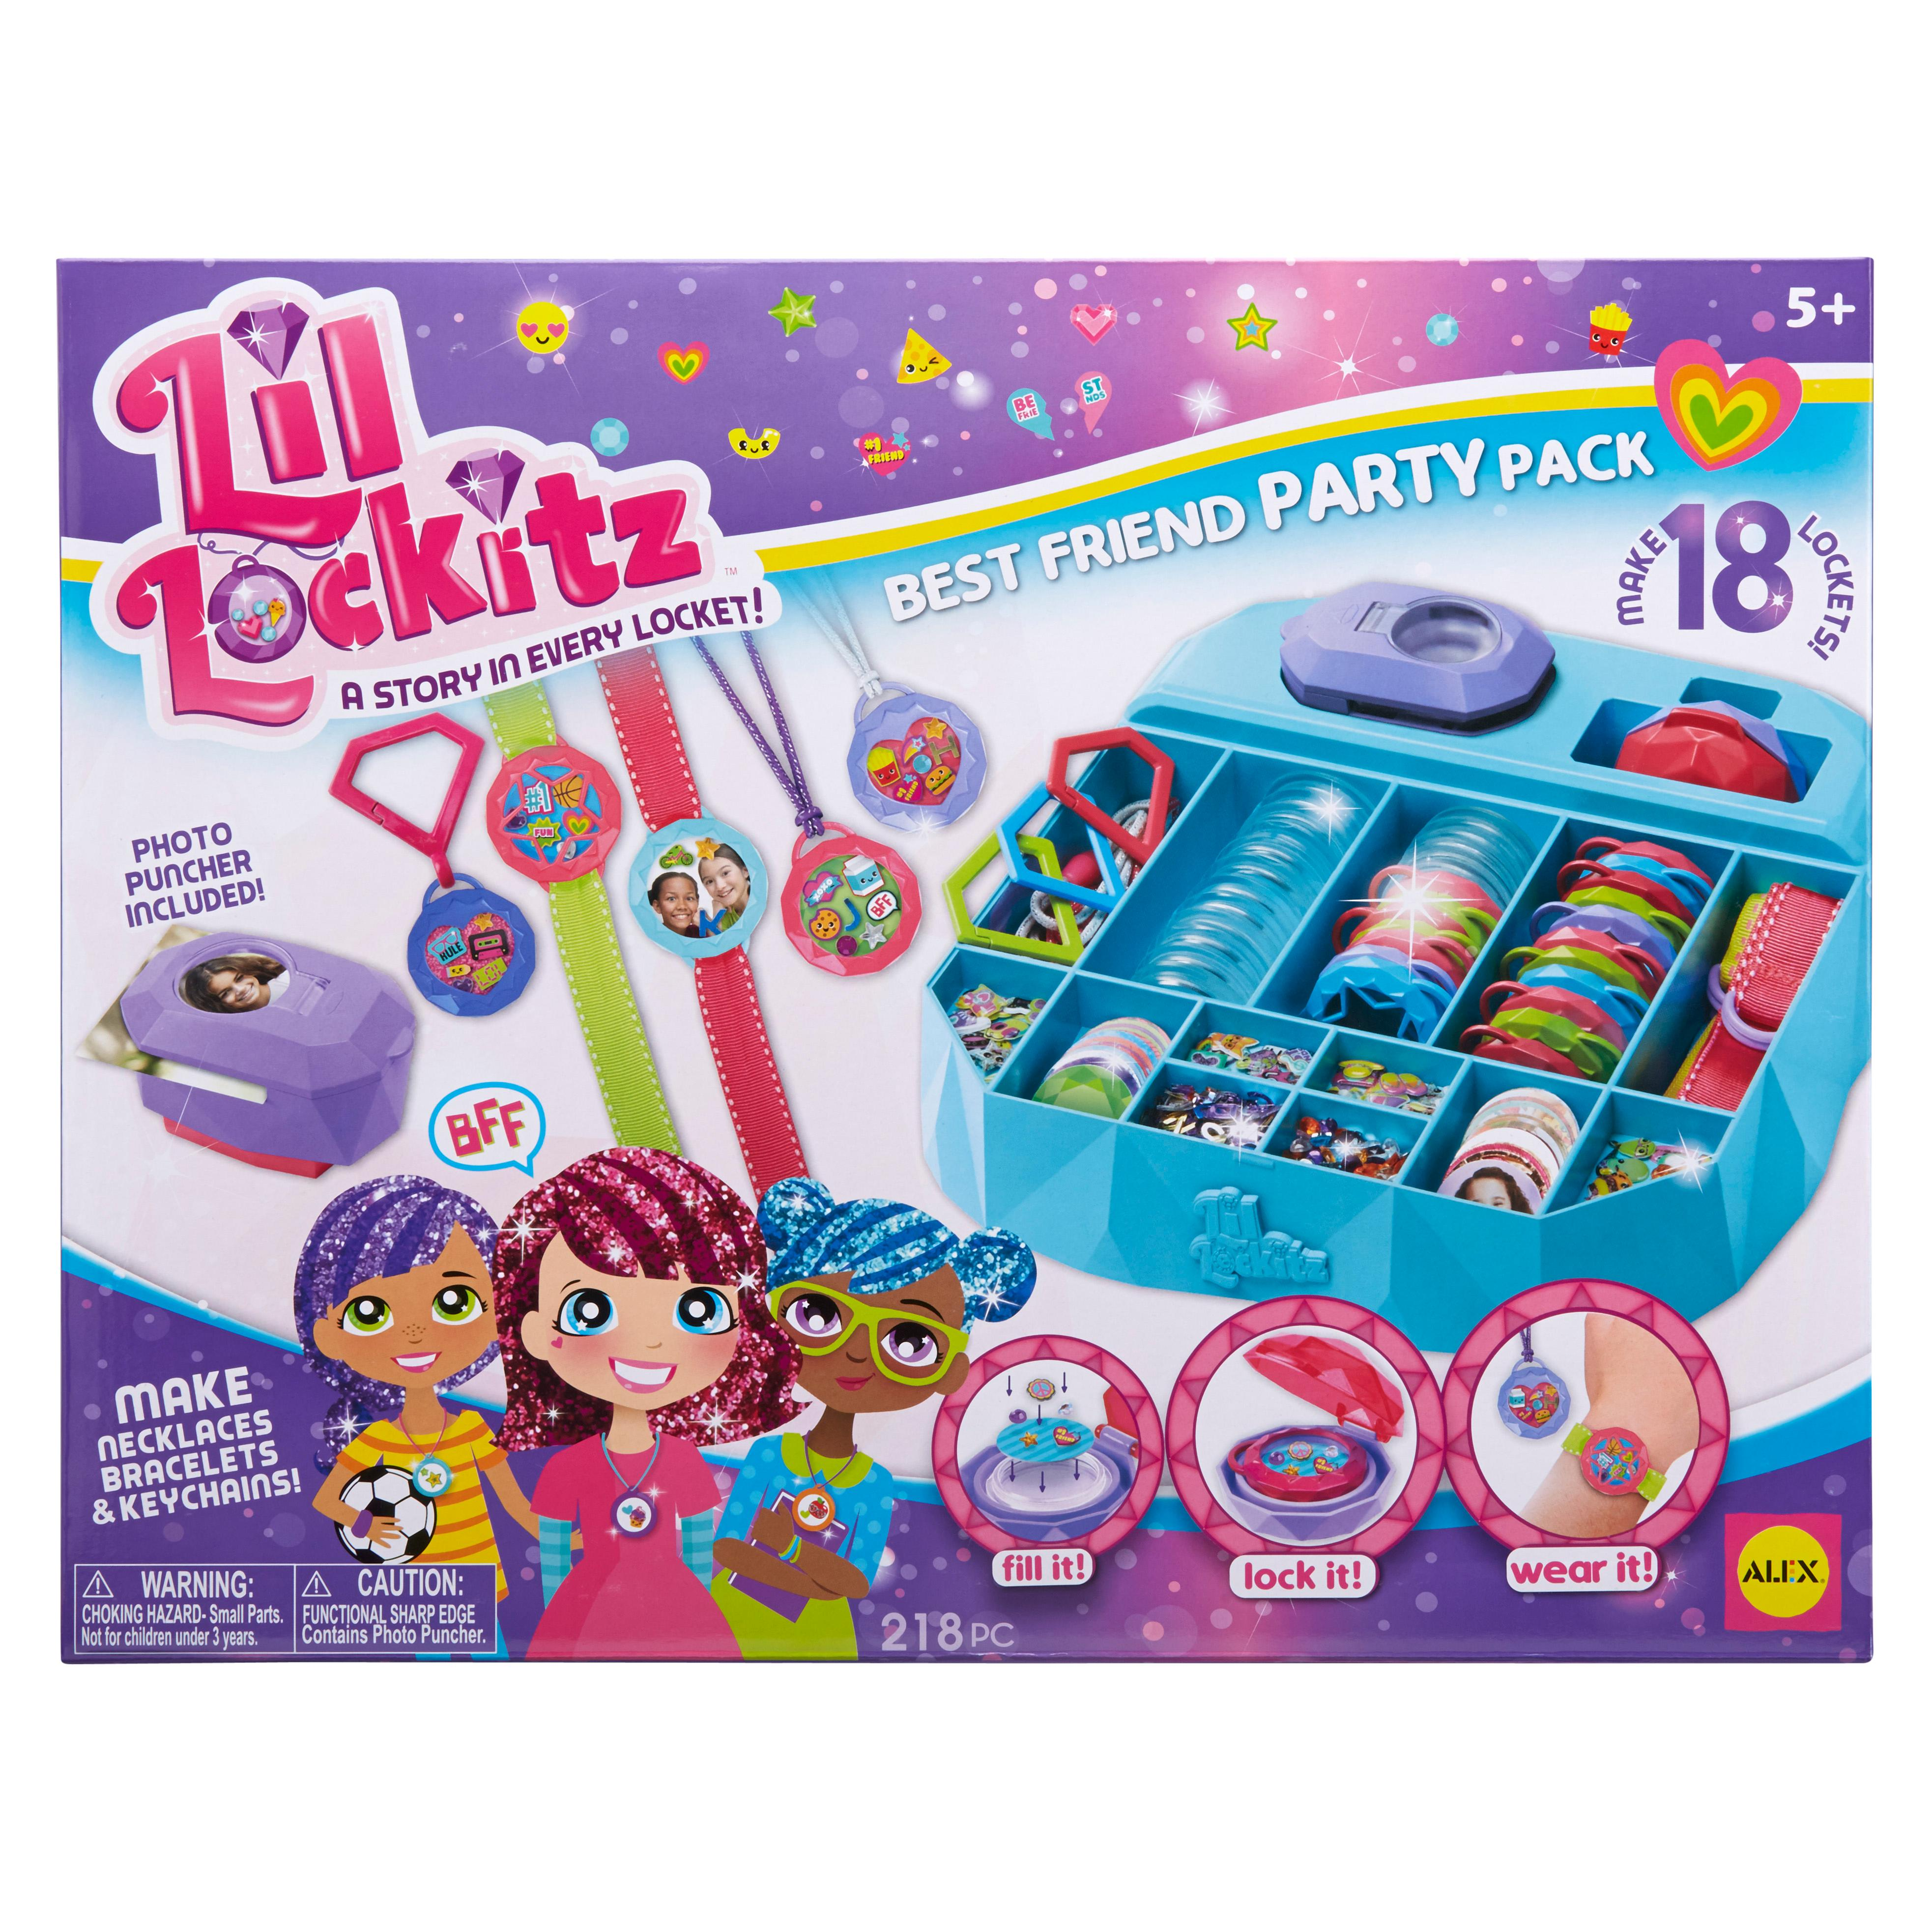 Amazon.com: Lil Lockitz Best Friend Party Pack: Toys & Games